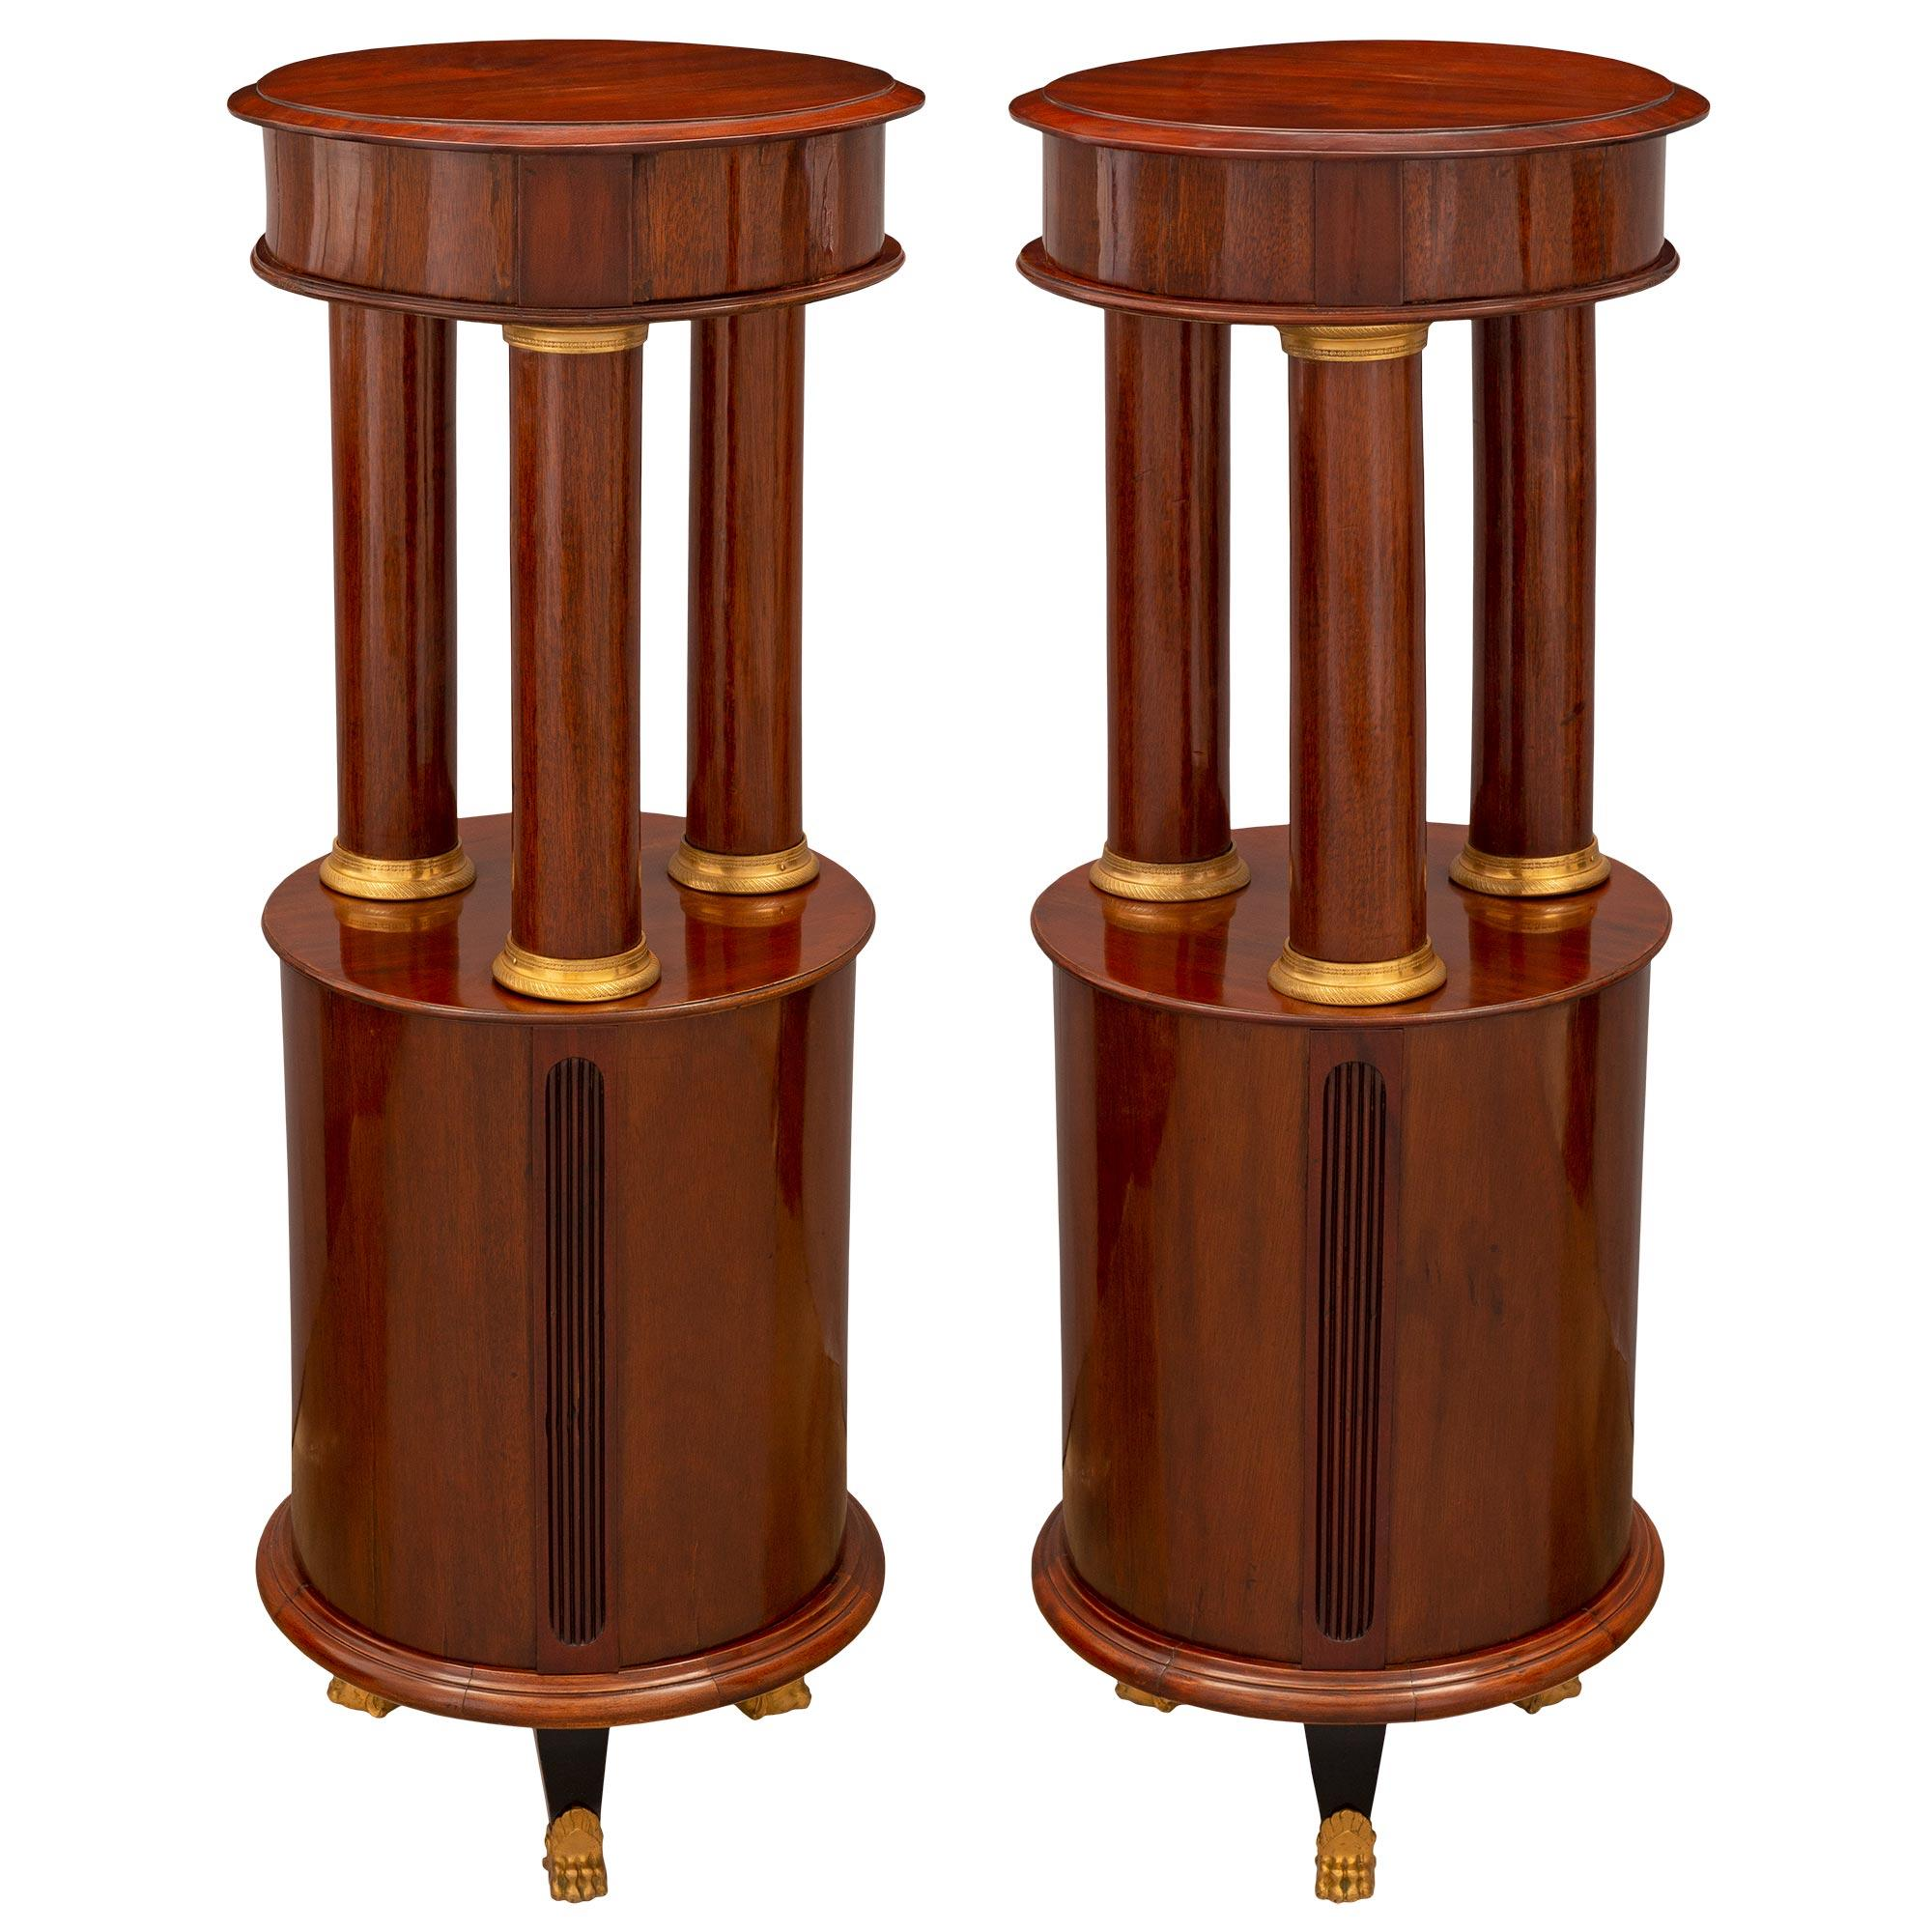 Pair of French Mid-19th Century Empire Style Mounted Pedestals